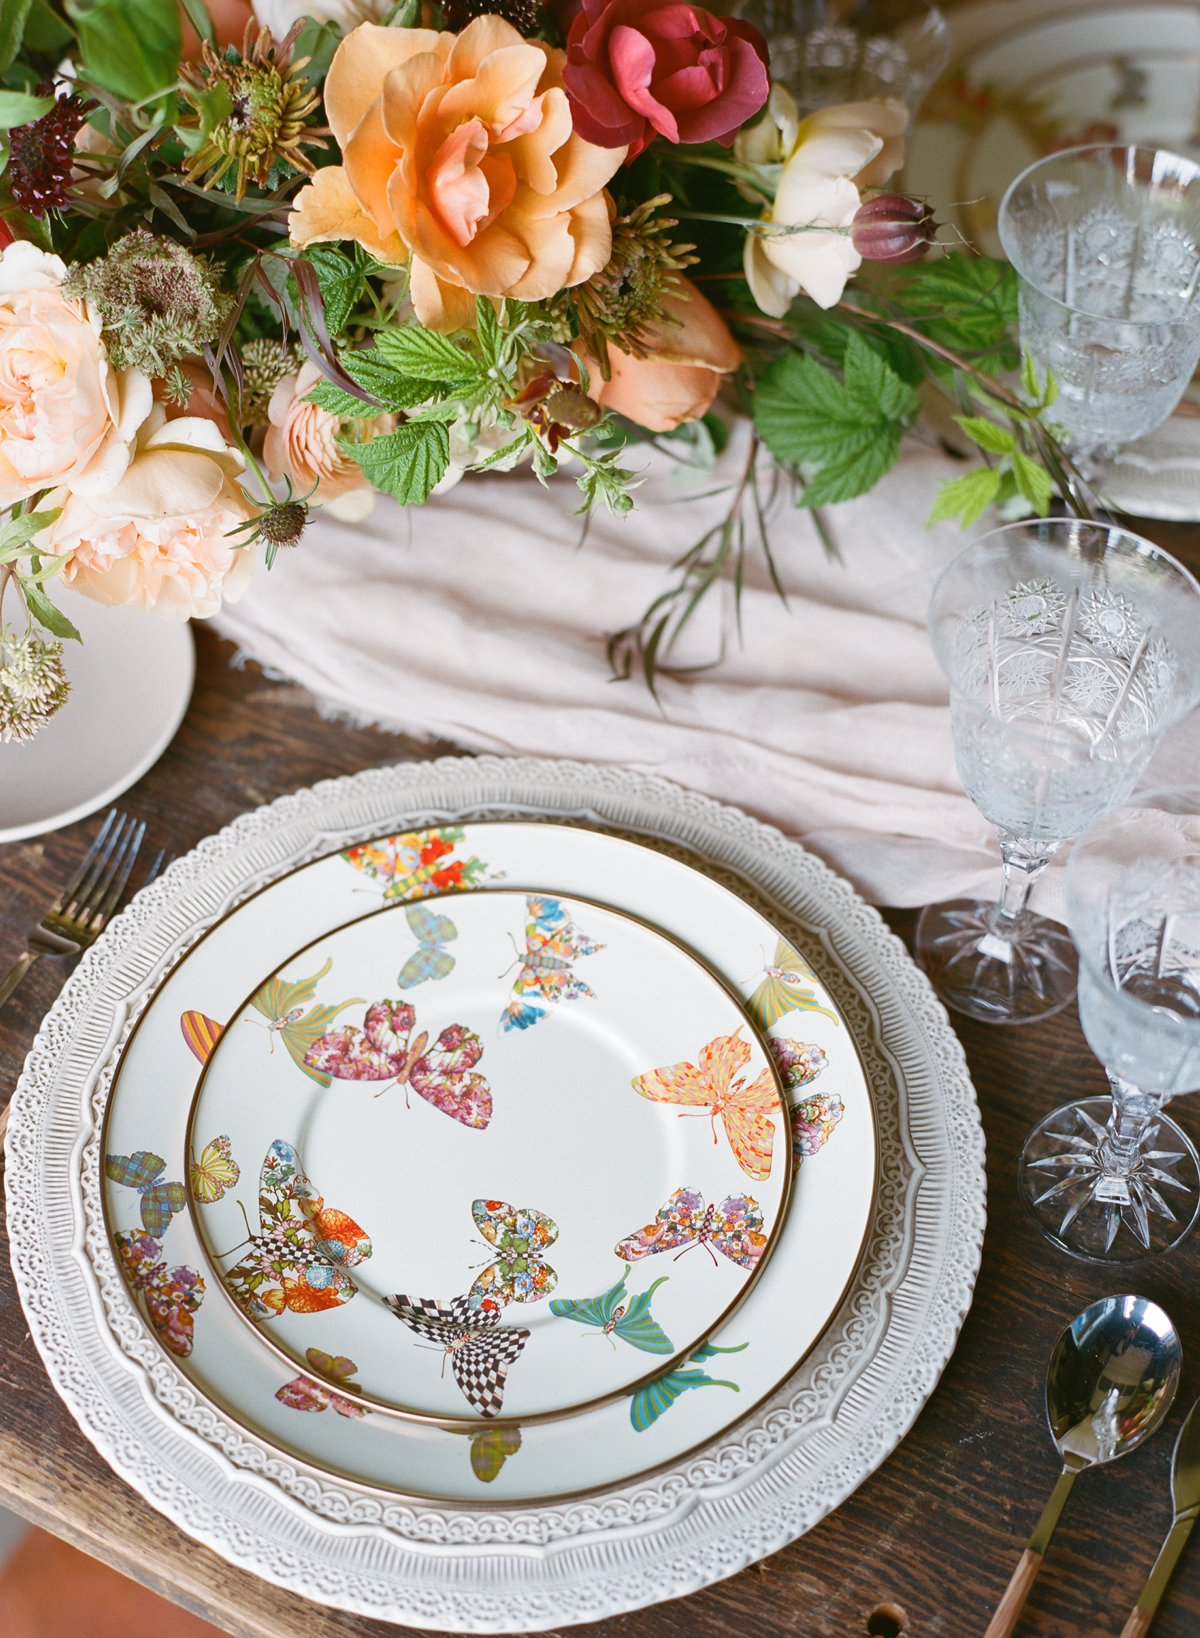 butterfly-printed dishware